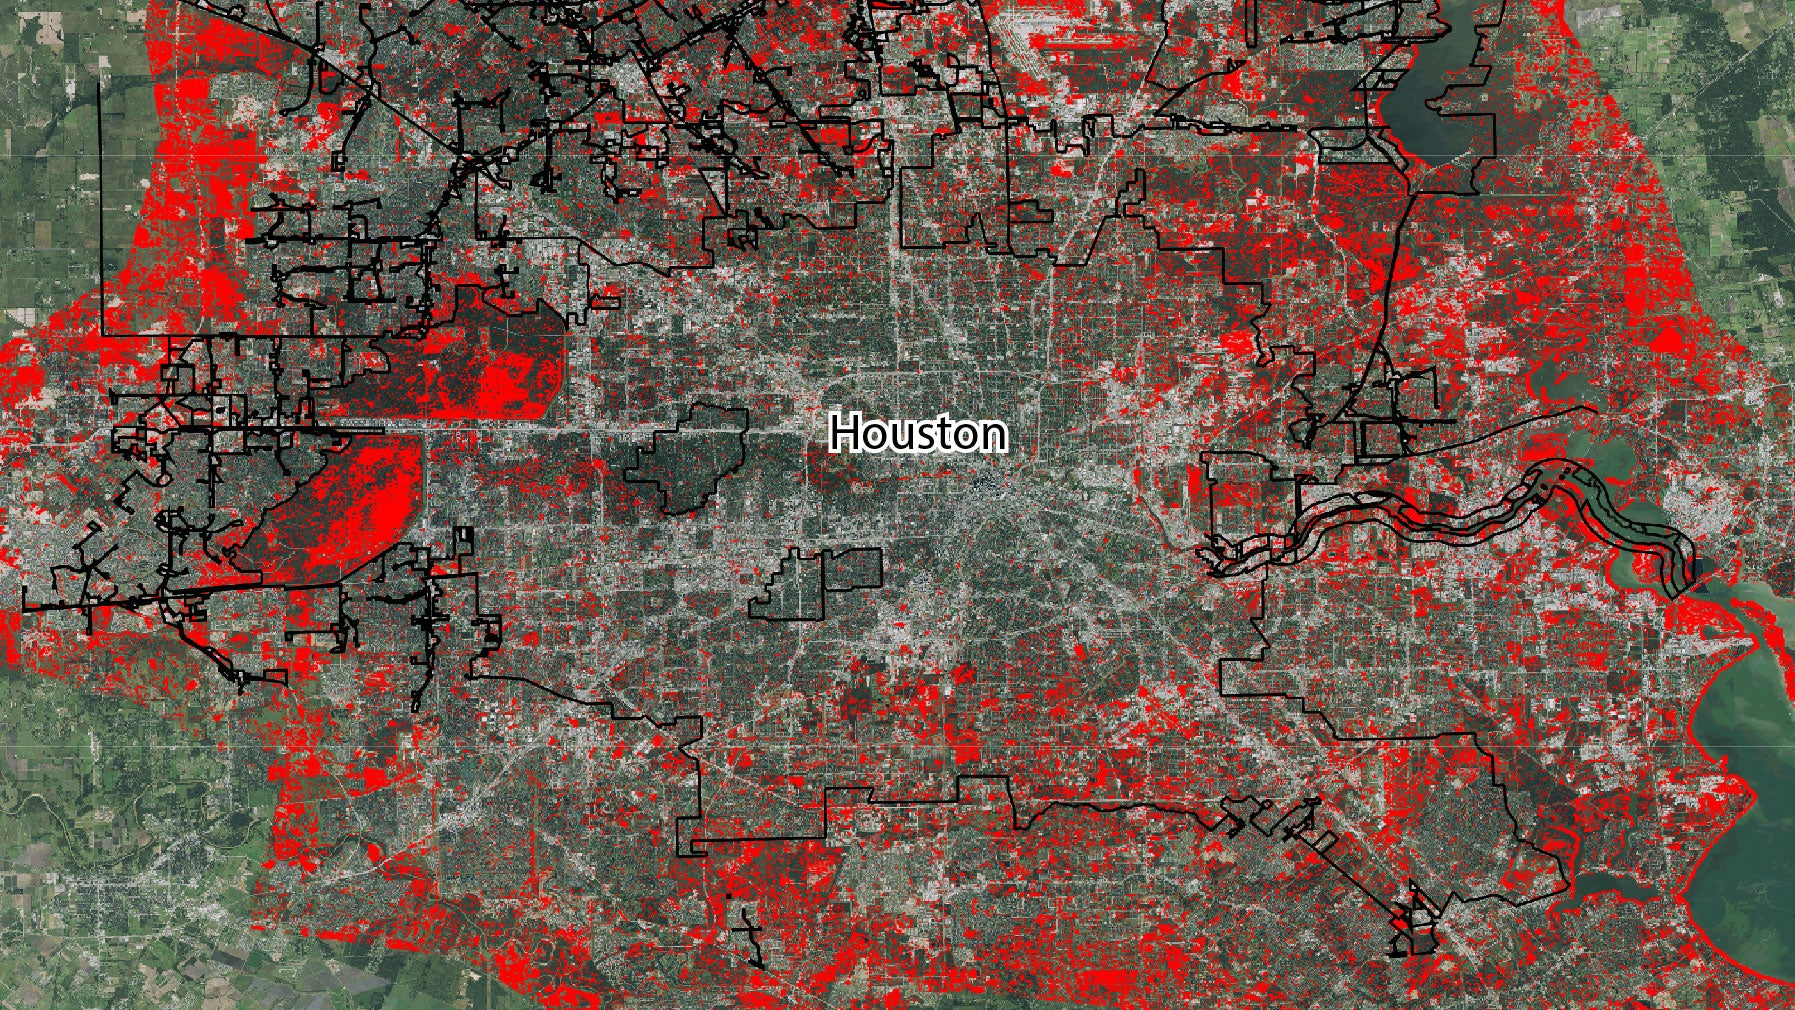 A map showing areas flooded in Houston after Hurricane Harvey